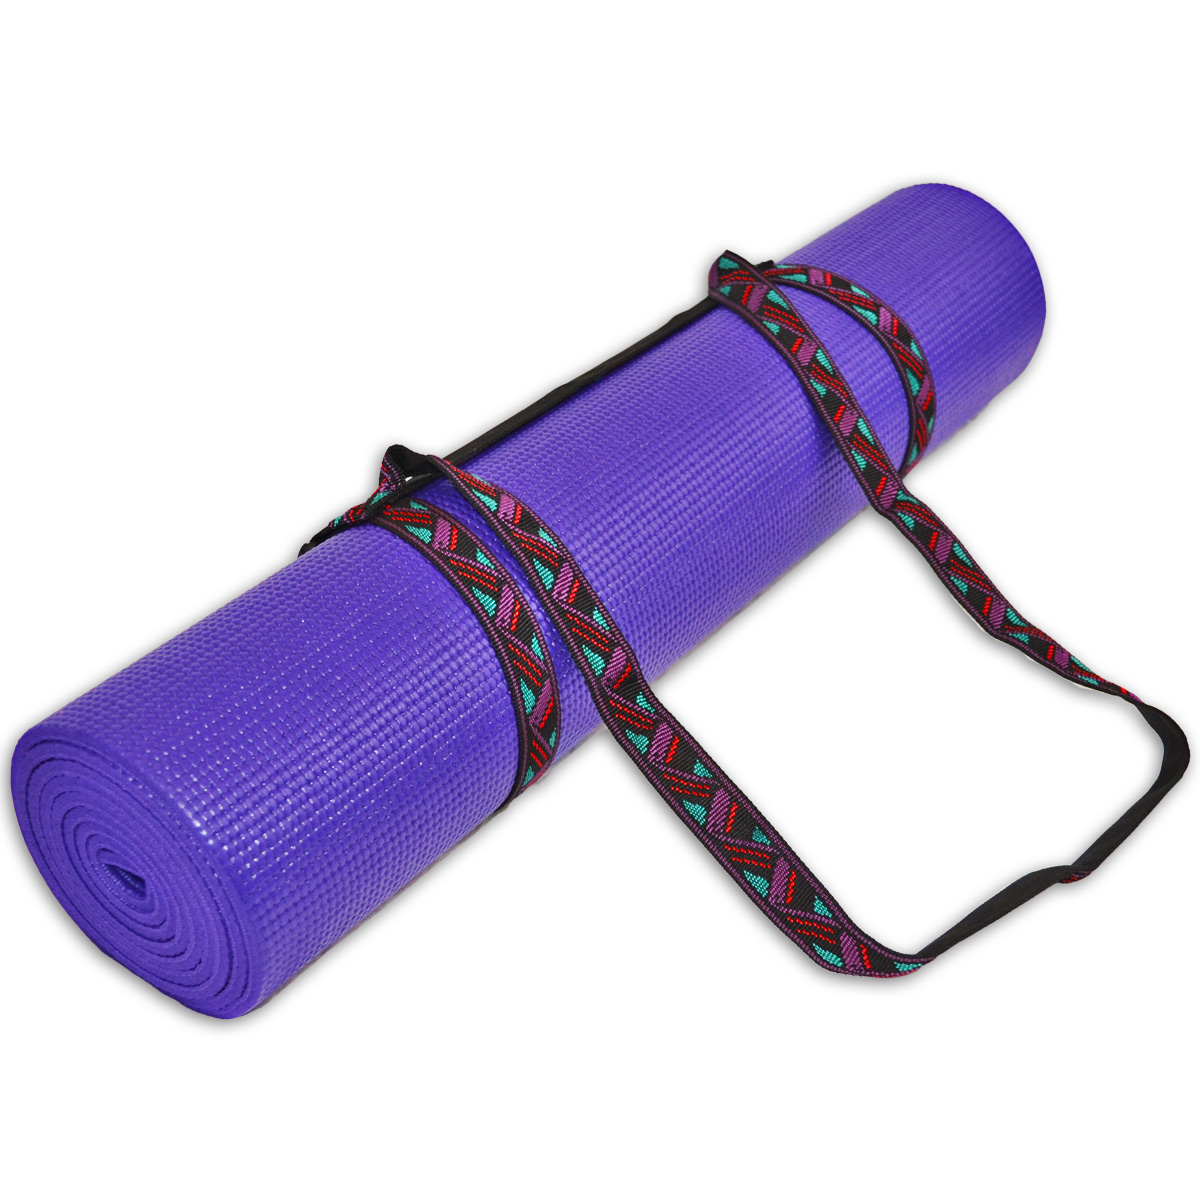 Yoga Mat Harness Strap Yoga Accessories